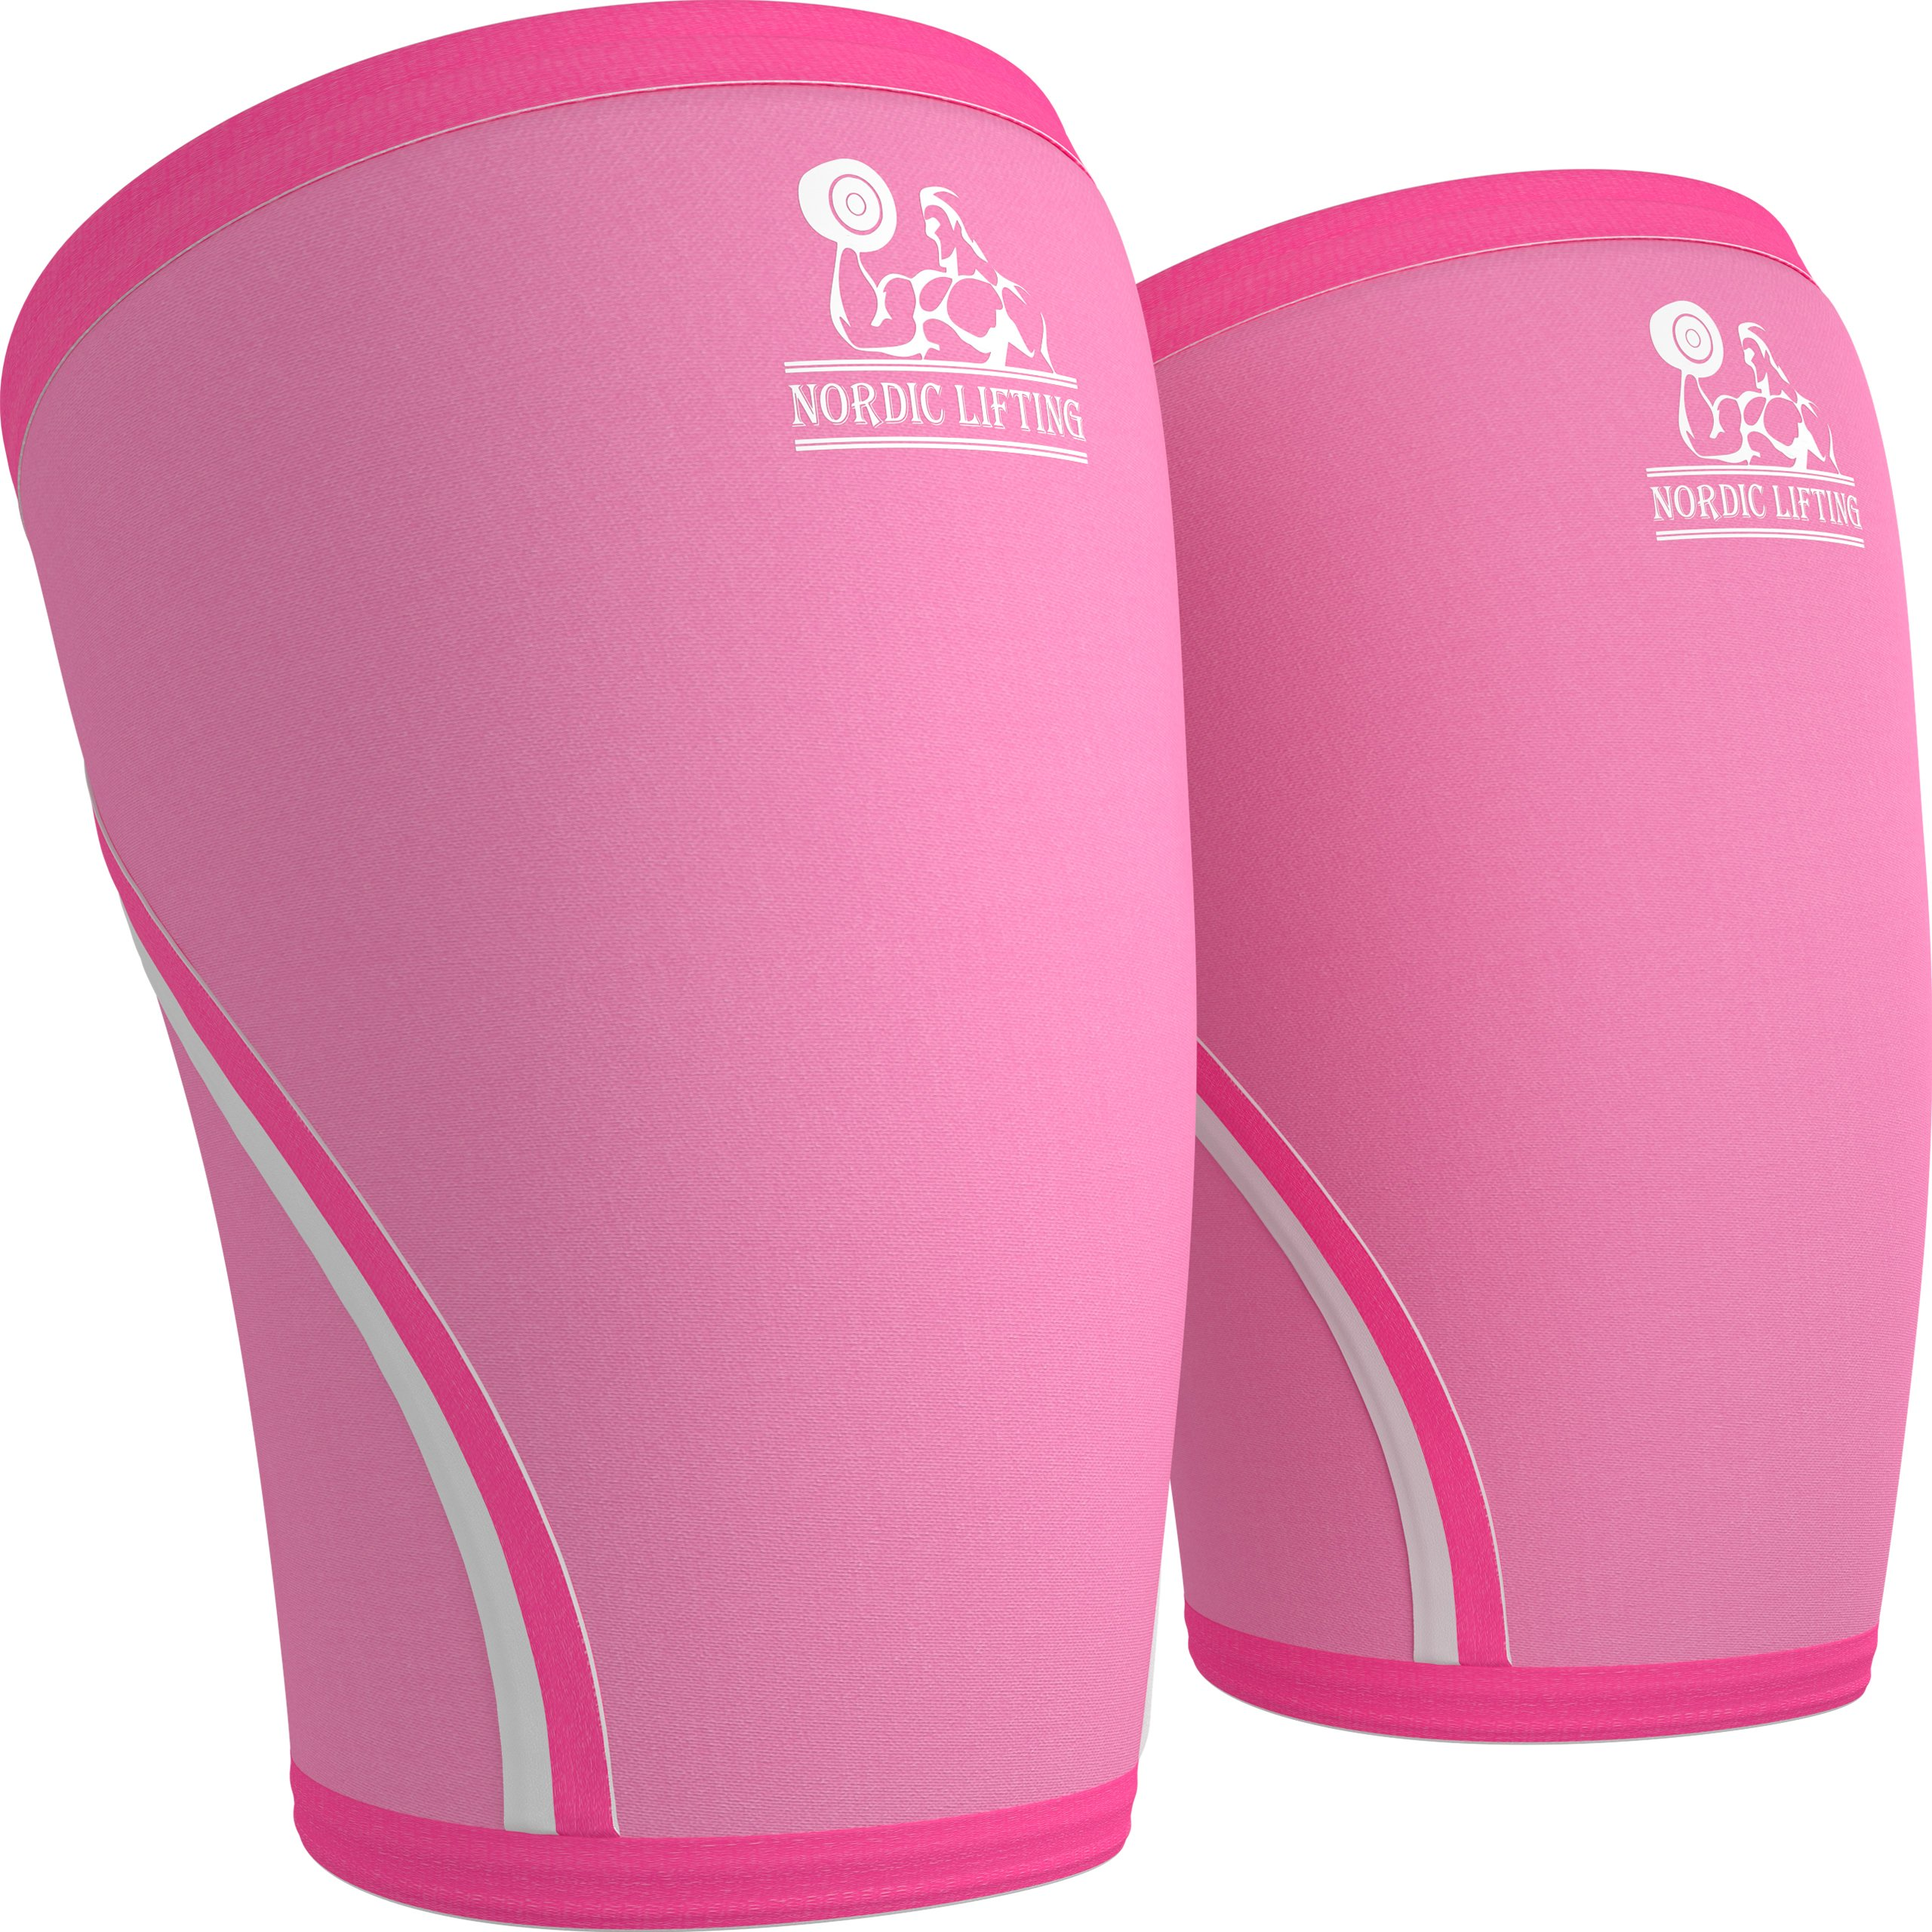 d9bcc95257 Amazon.com: Knee Sleeves (1 Pair) Support & Compression for The Best  Squats, 7mm Neoprene - by Nordic Lifting (M, Pink): Health & Personal Care